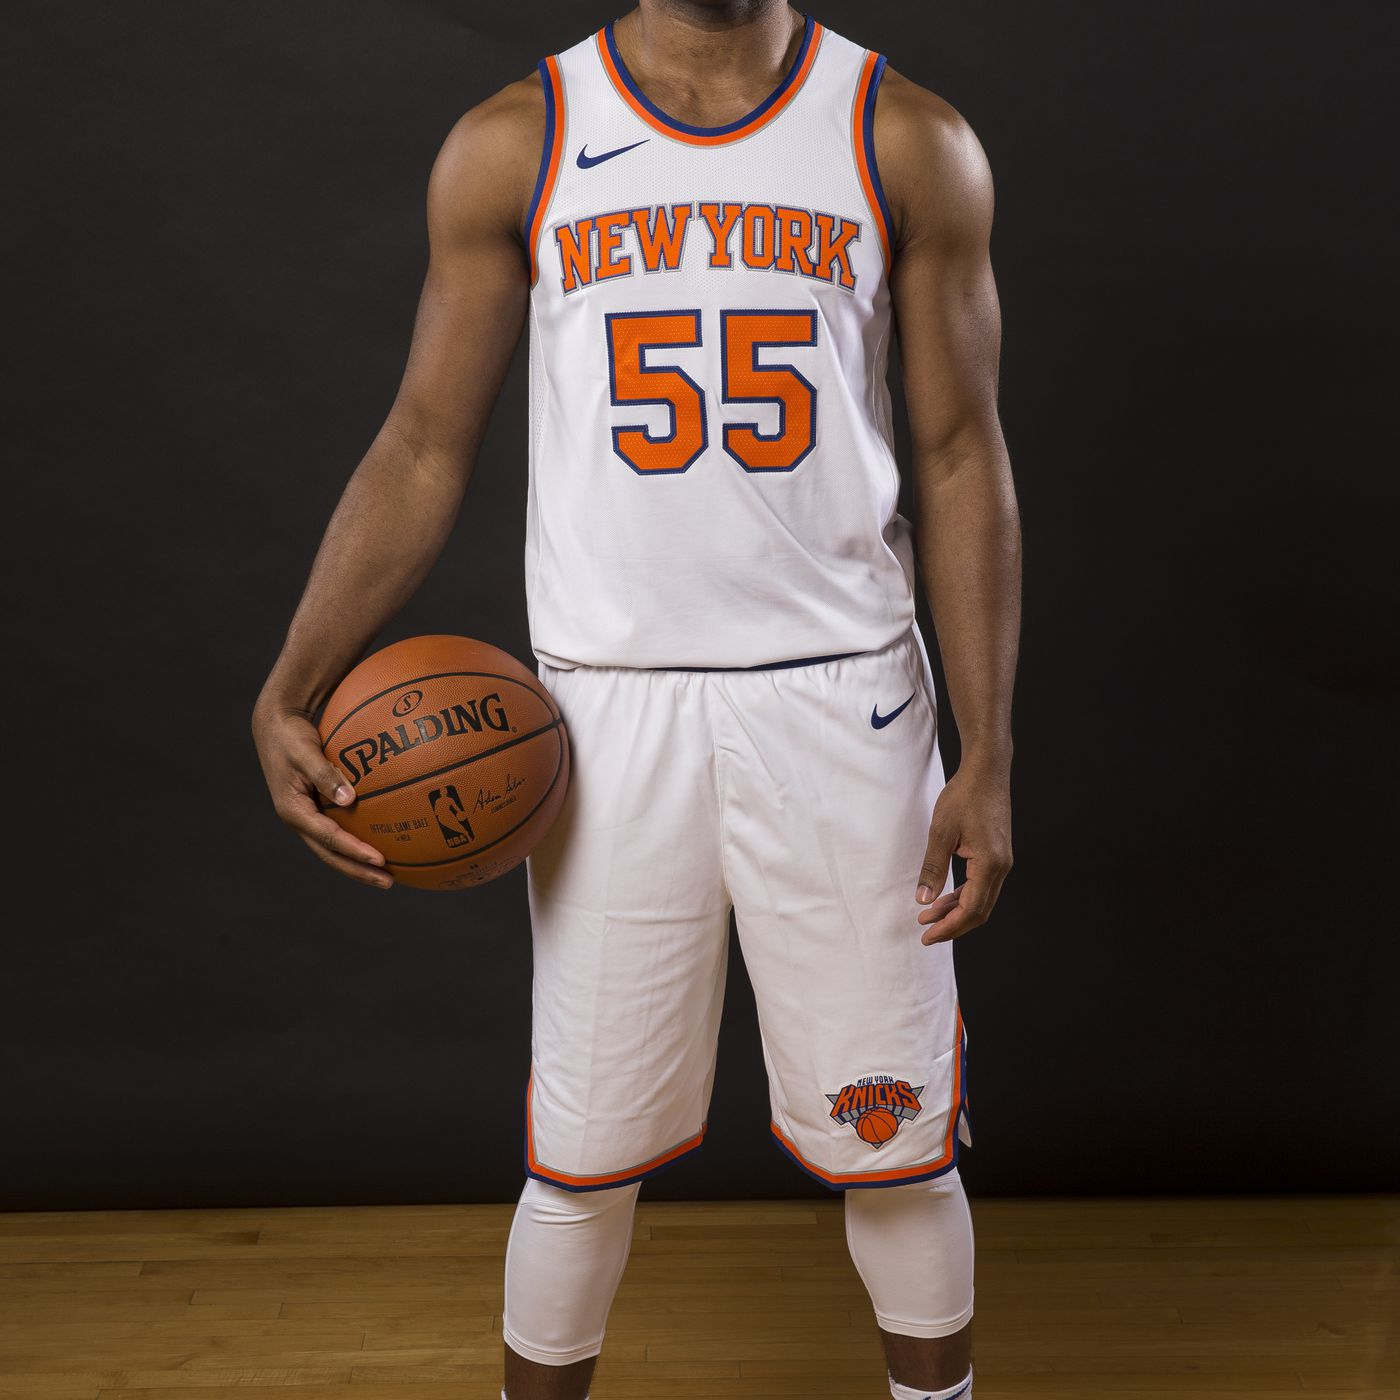 ffddee5c Knicks Uniform Update: Why is the franchise messing with the color orange?  - Posting and Toasting